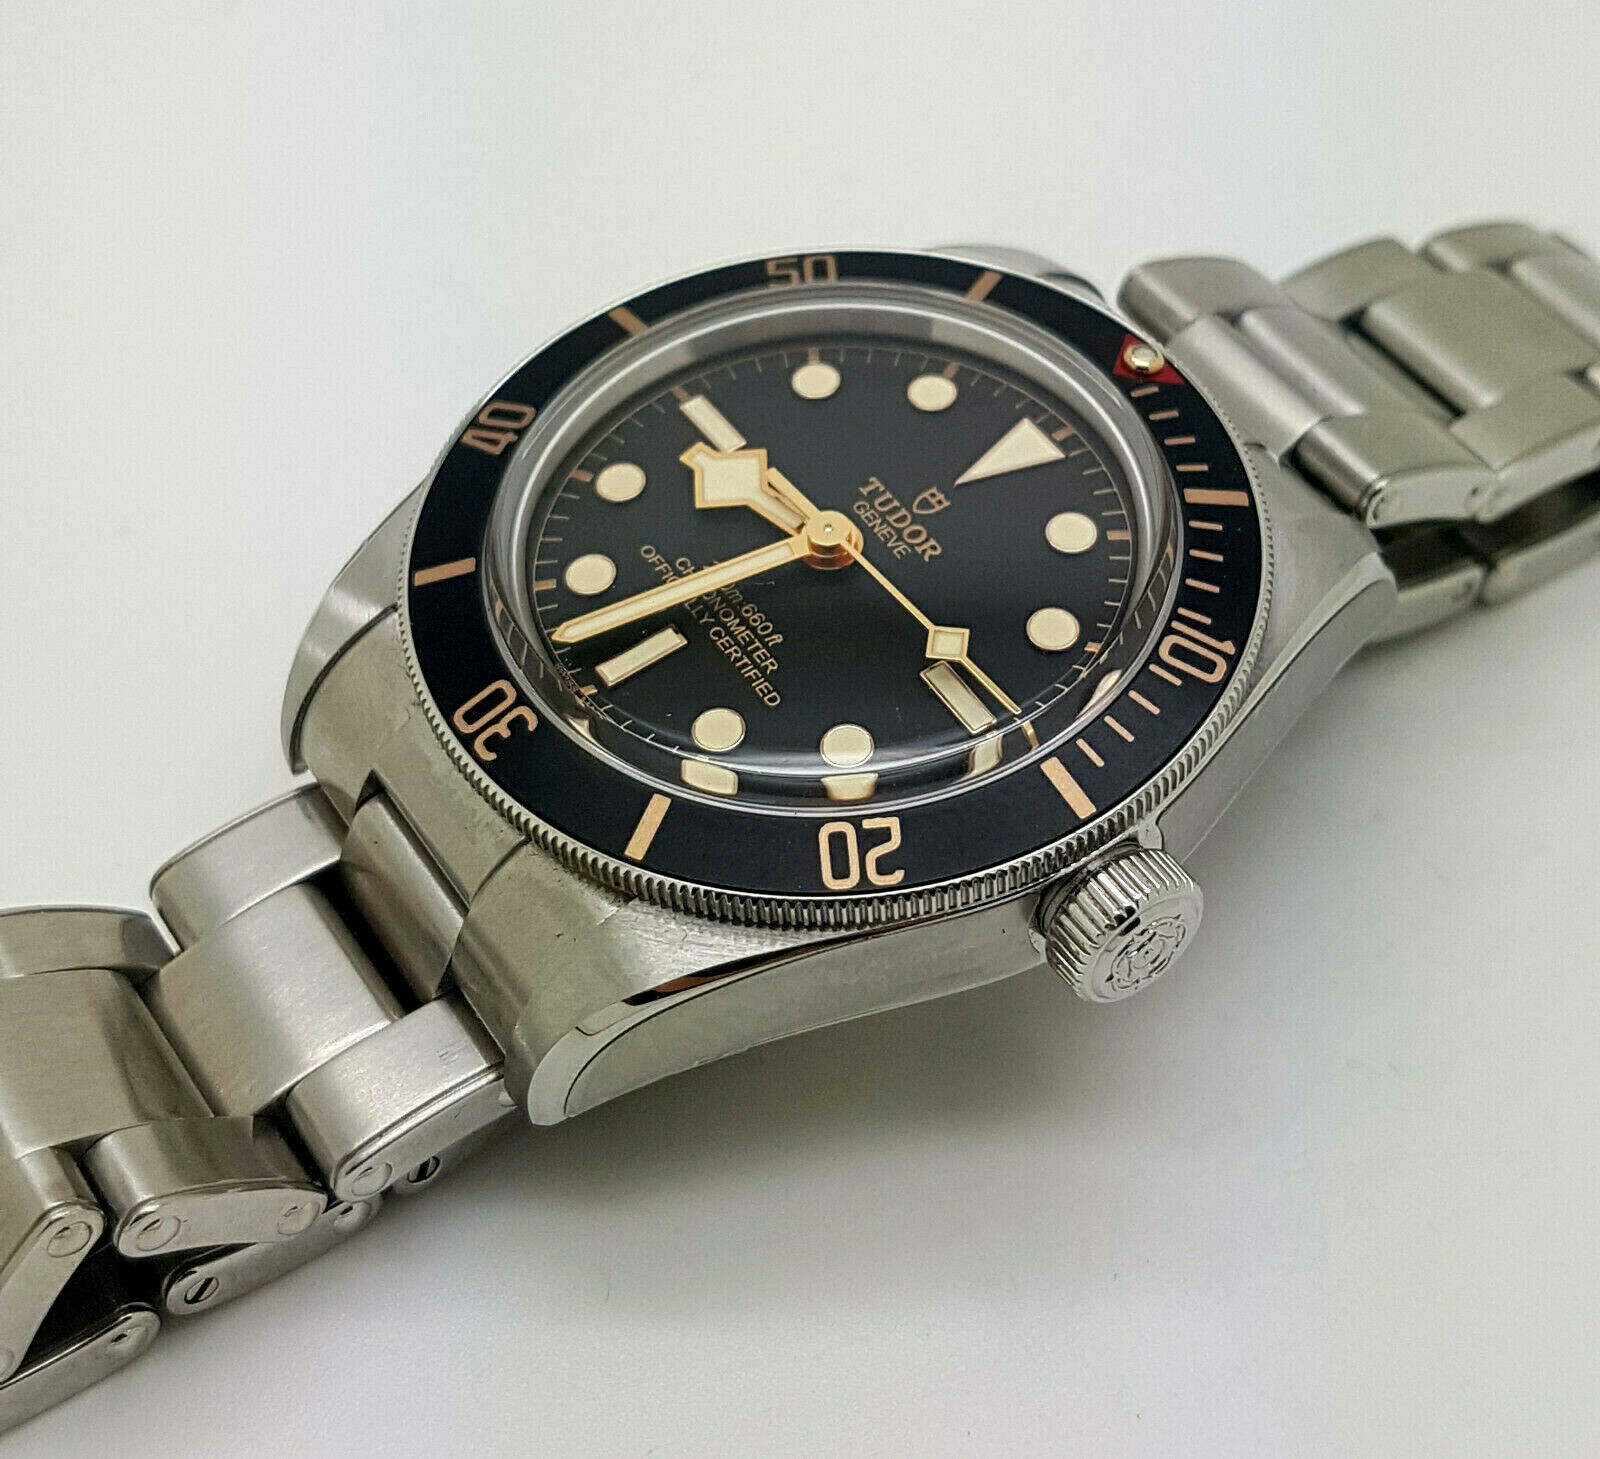 New S.Steel TUDOR Heritage Black Bay 58 Automatic Diver Watch M79030n-0001 - watch picture 1